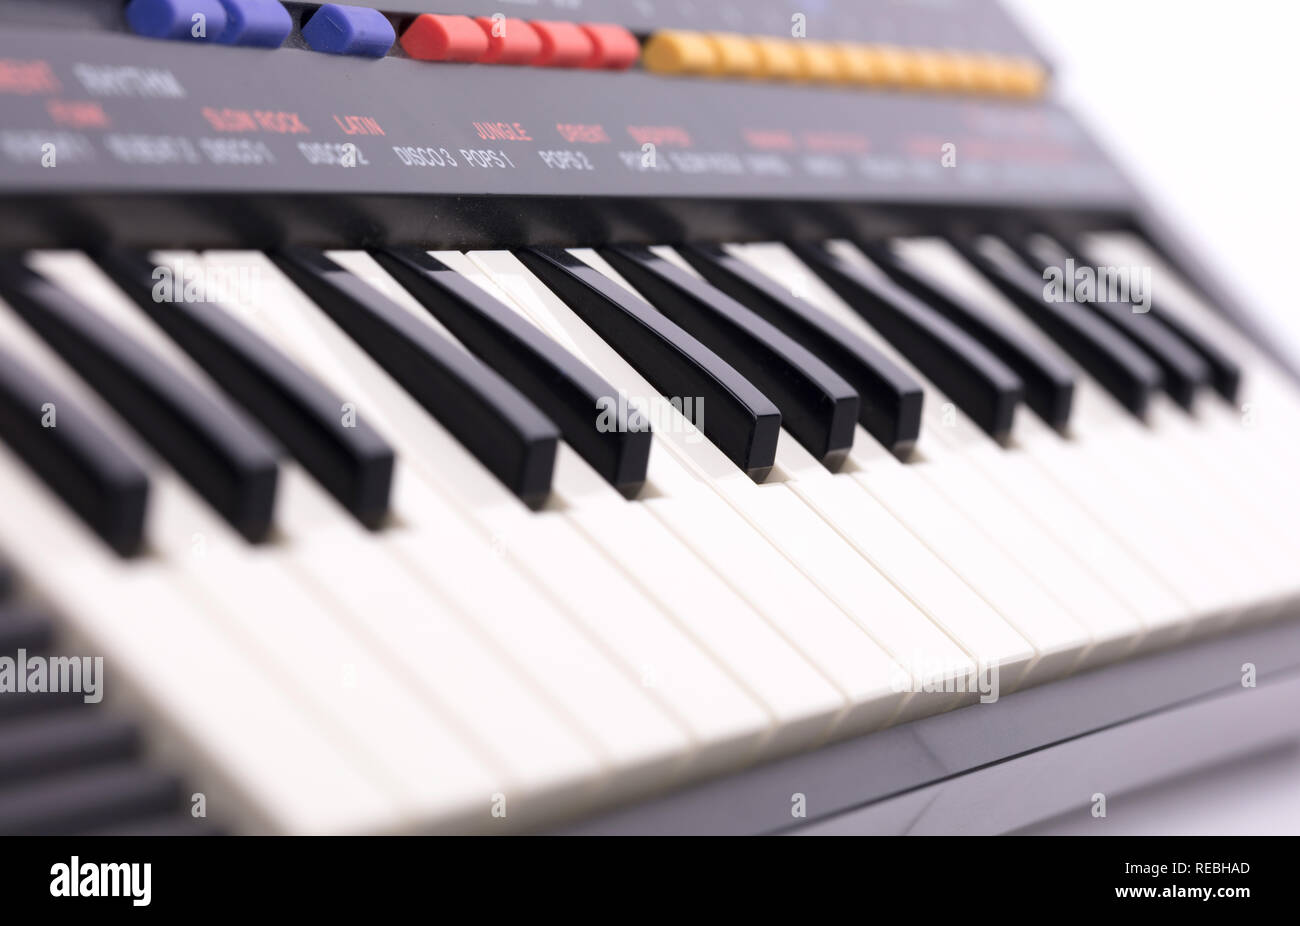 Small old keyboard, isolated on a white background Stock